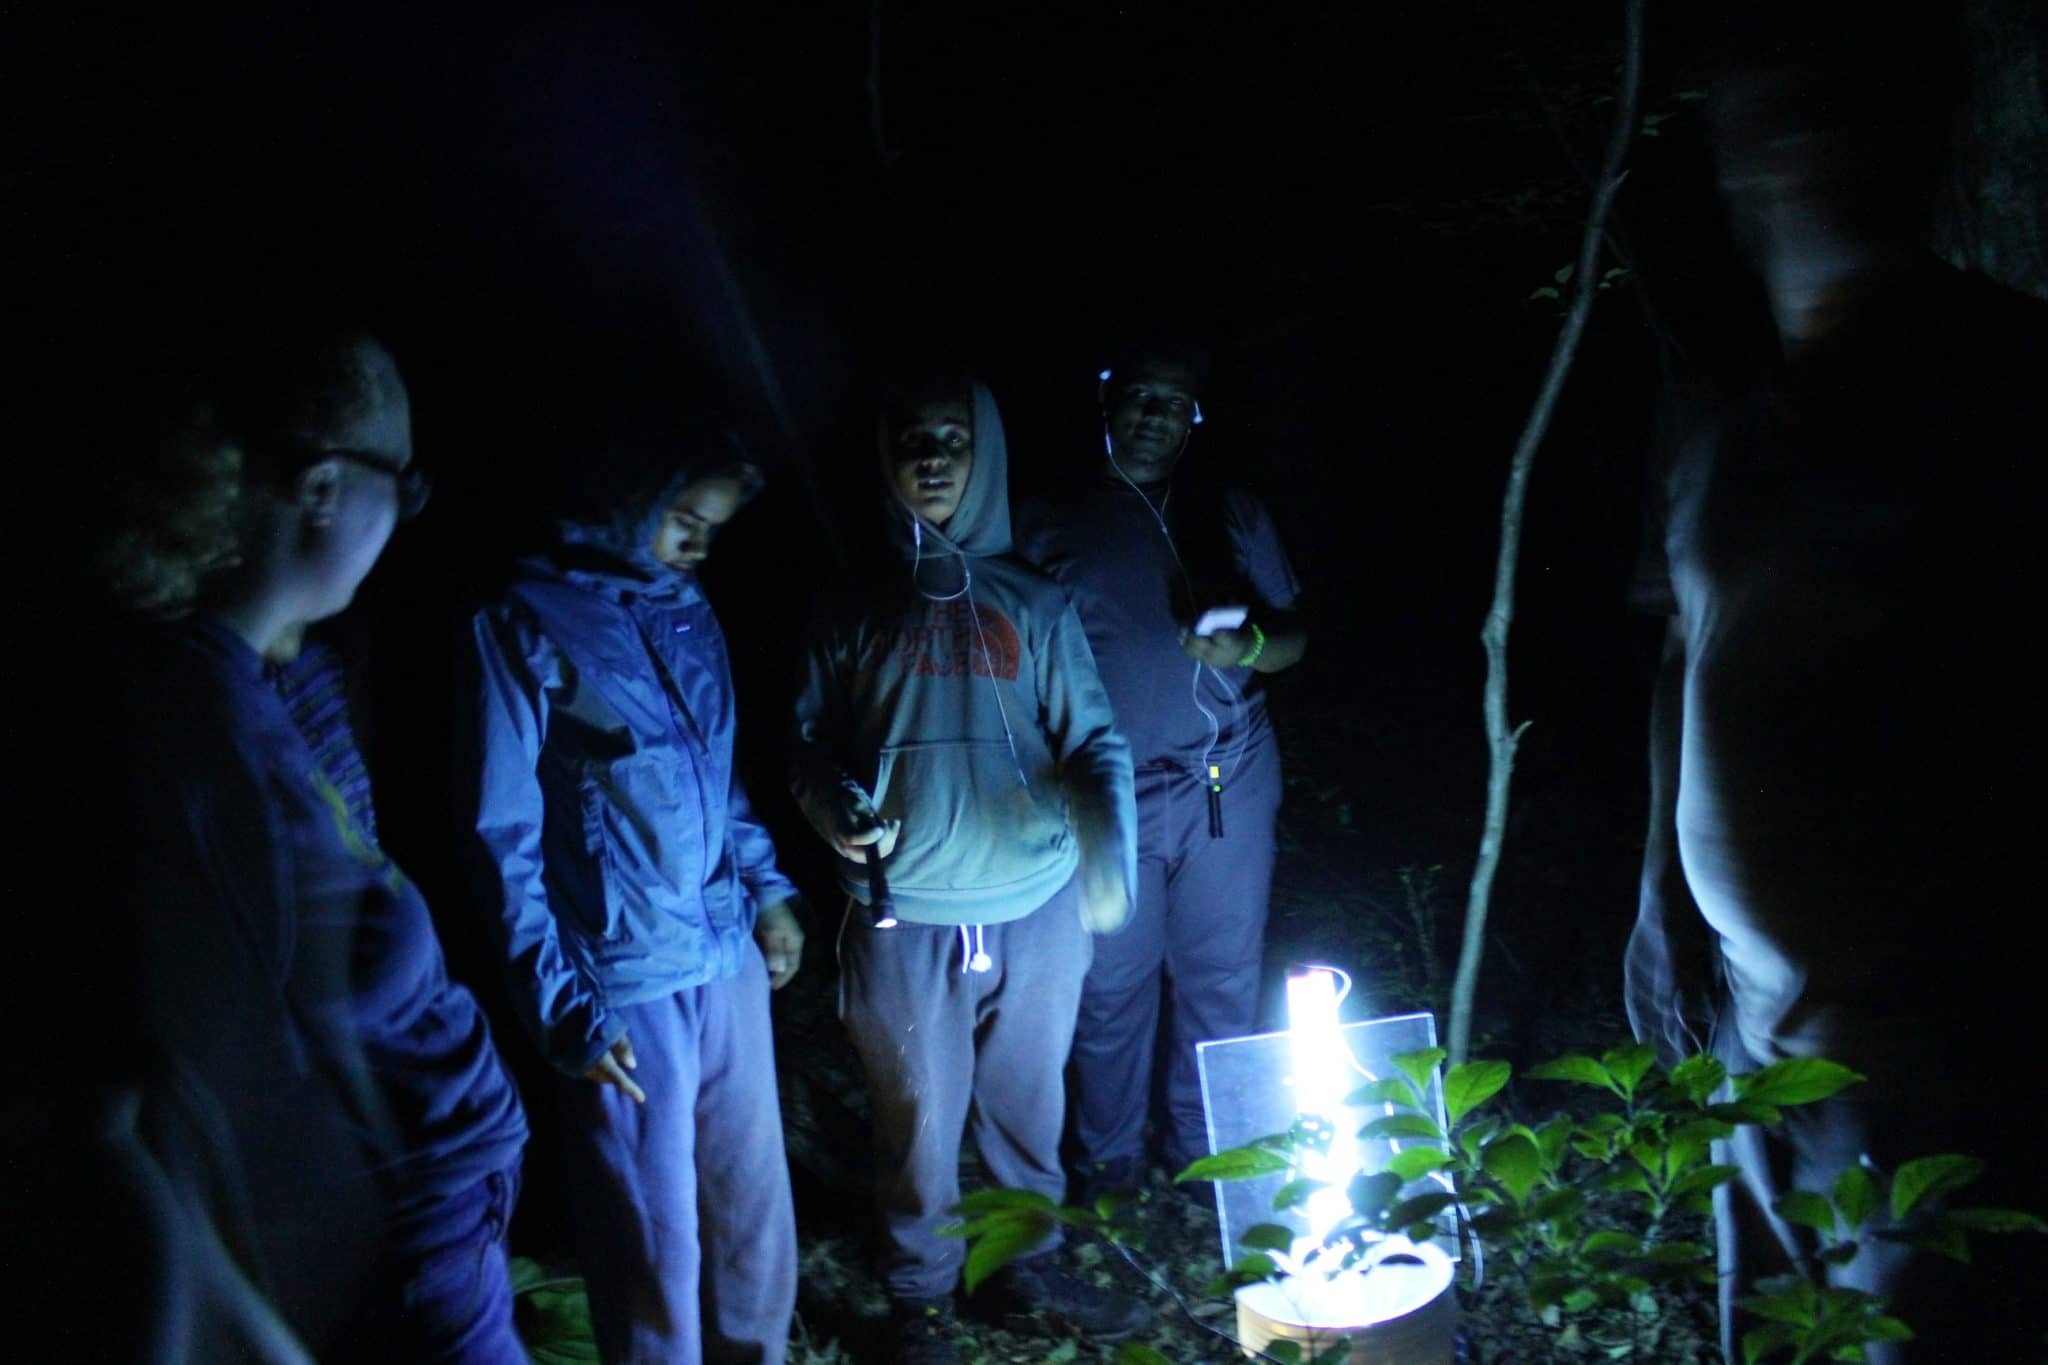 Group of people observing a light